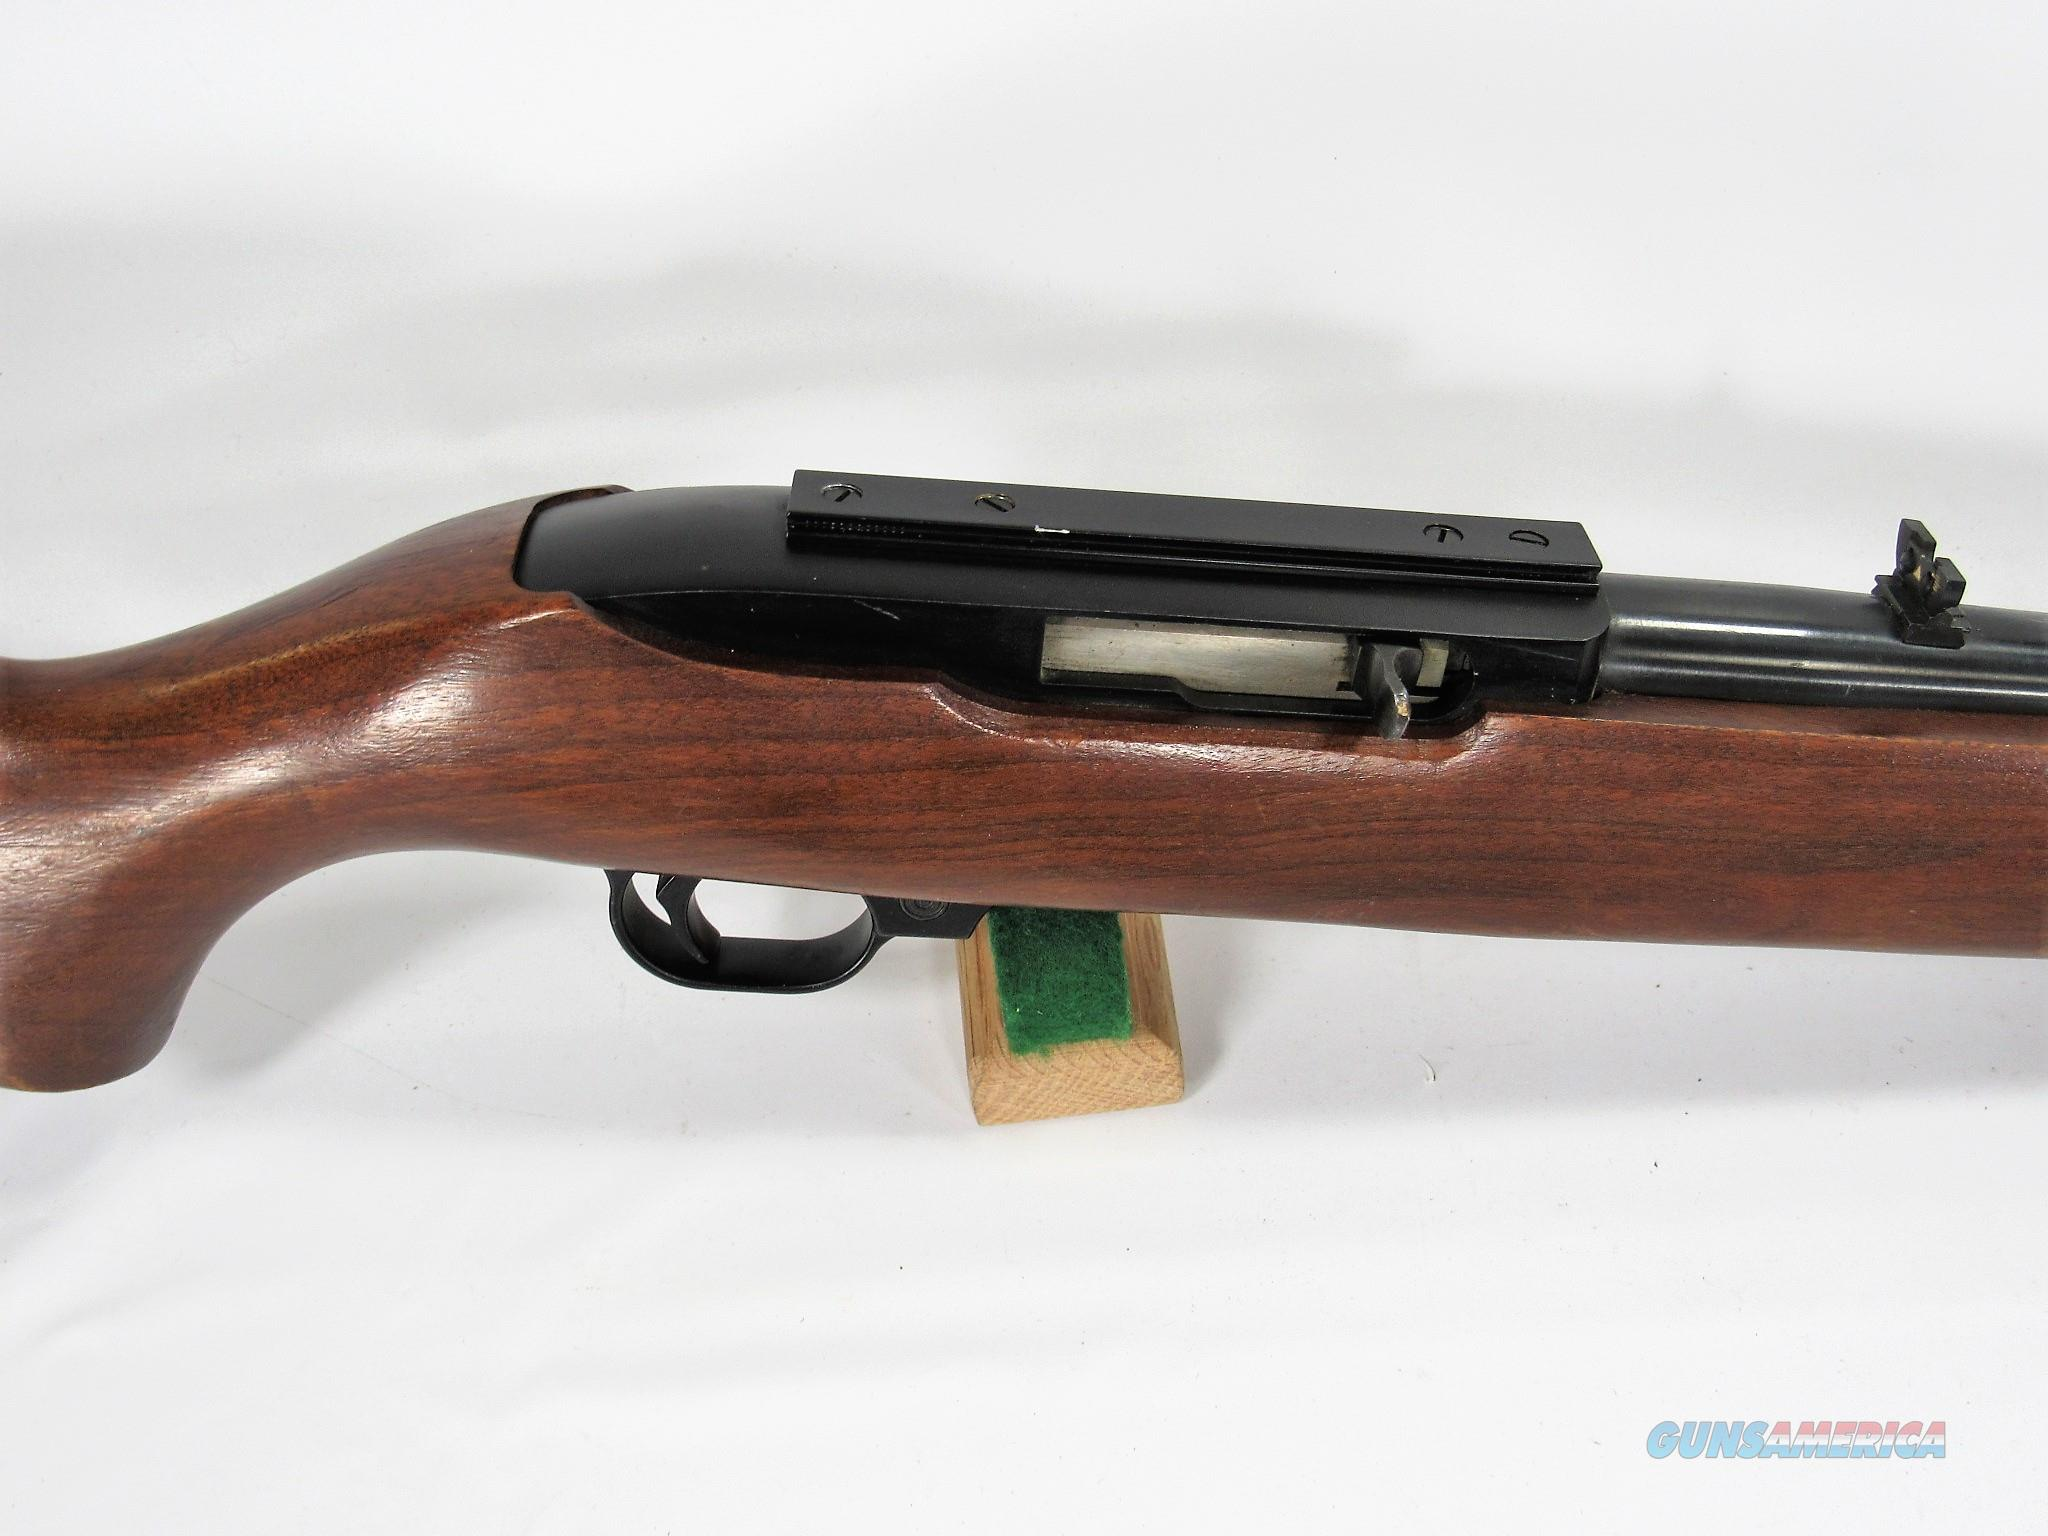 83Y RUGER 10/22 22LR, EARLY WALNUT STOCK GUN MADE IN 1975  Guns > Rifles > Ruger Rifles > 10-22